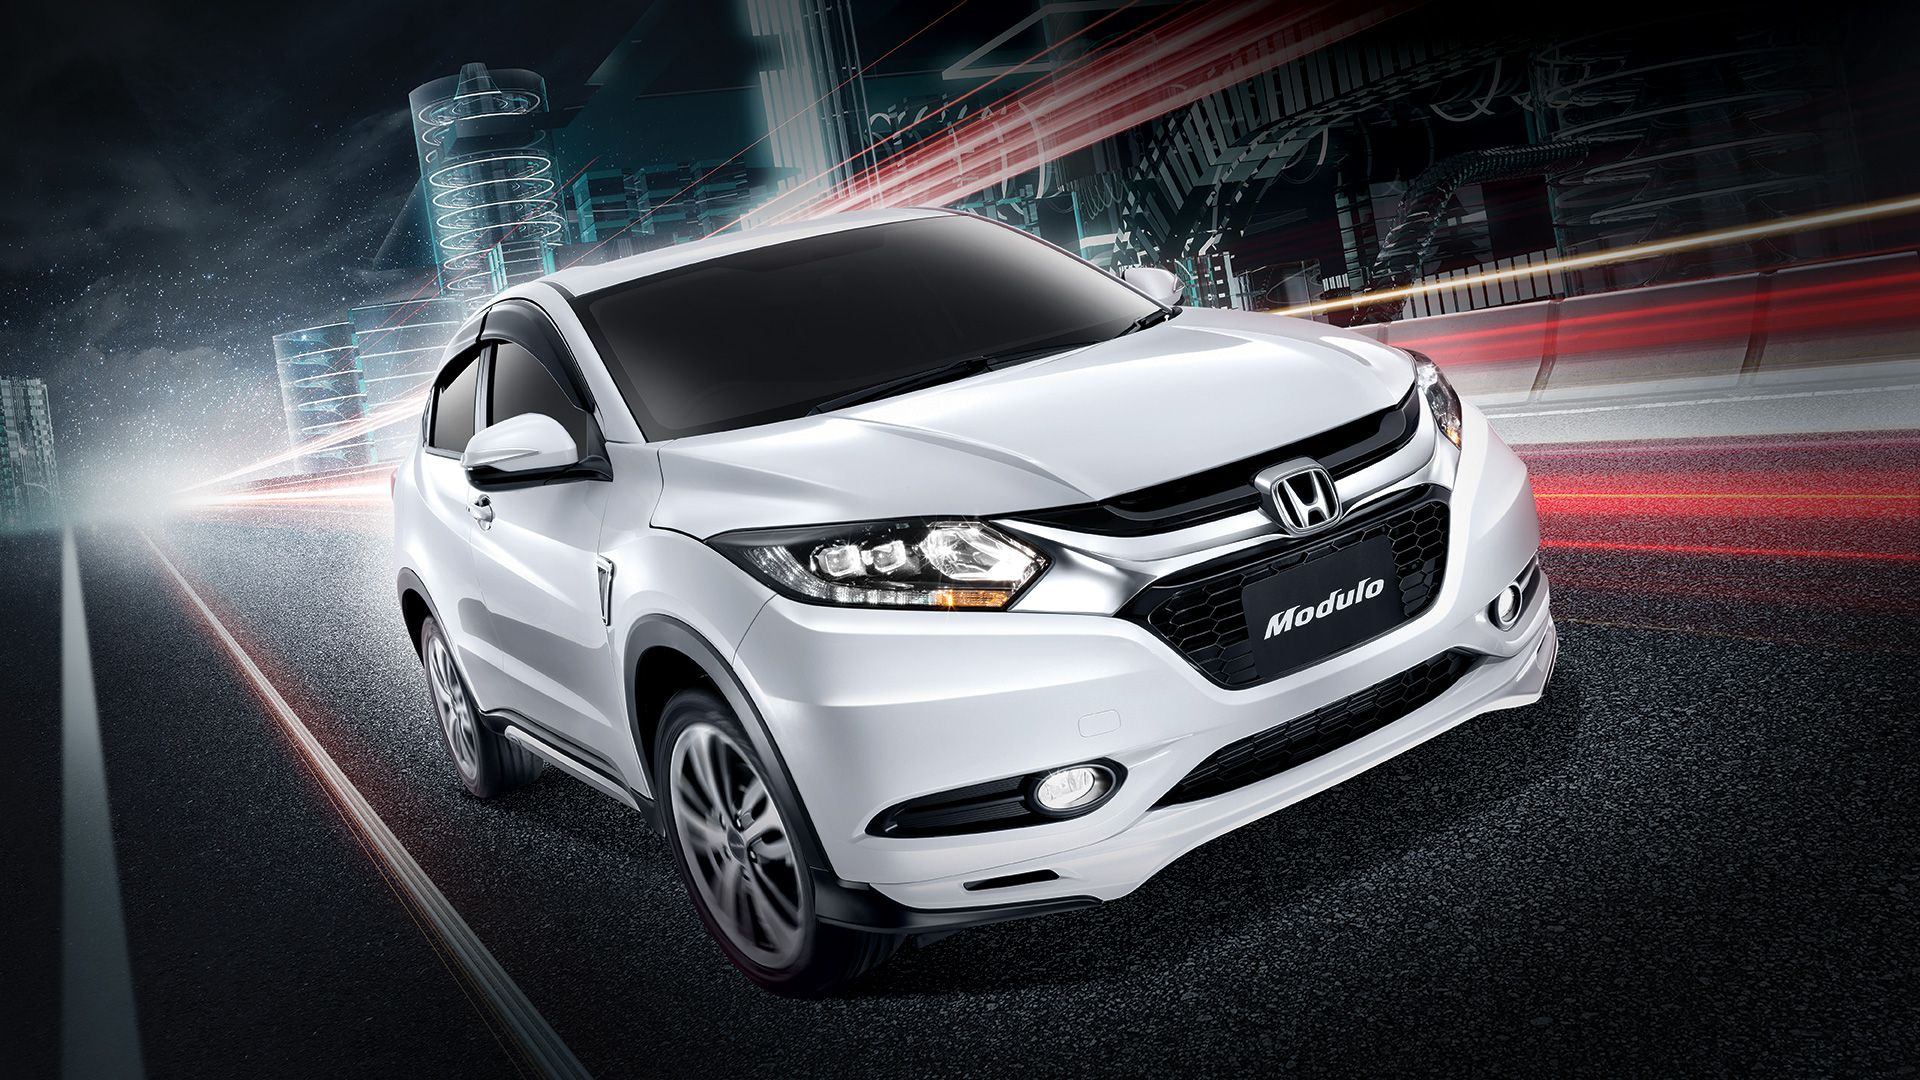 honda hr-v hd wallpapers | suv's | pinterest | hd wallpaper and honda